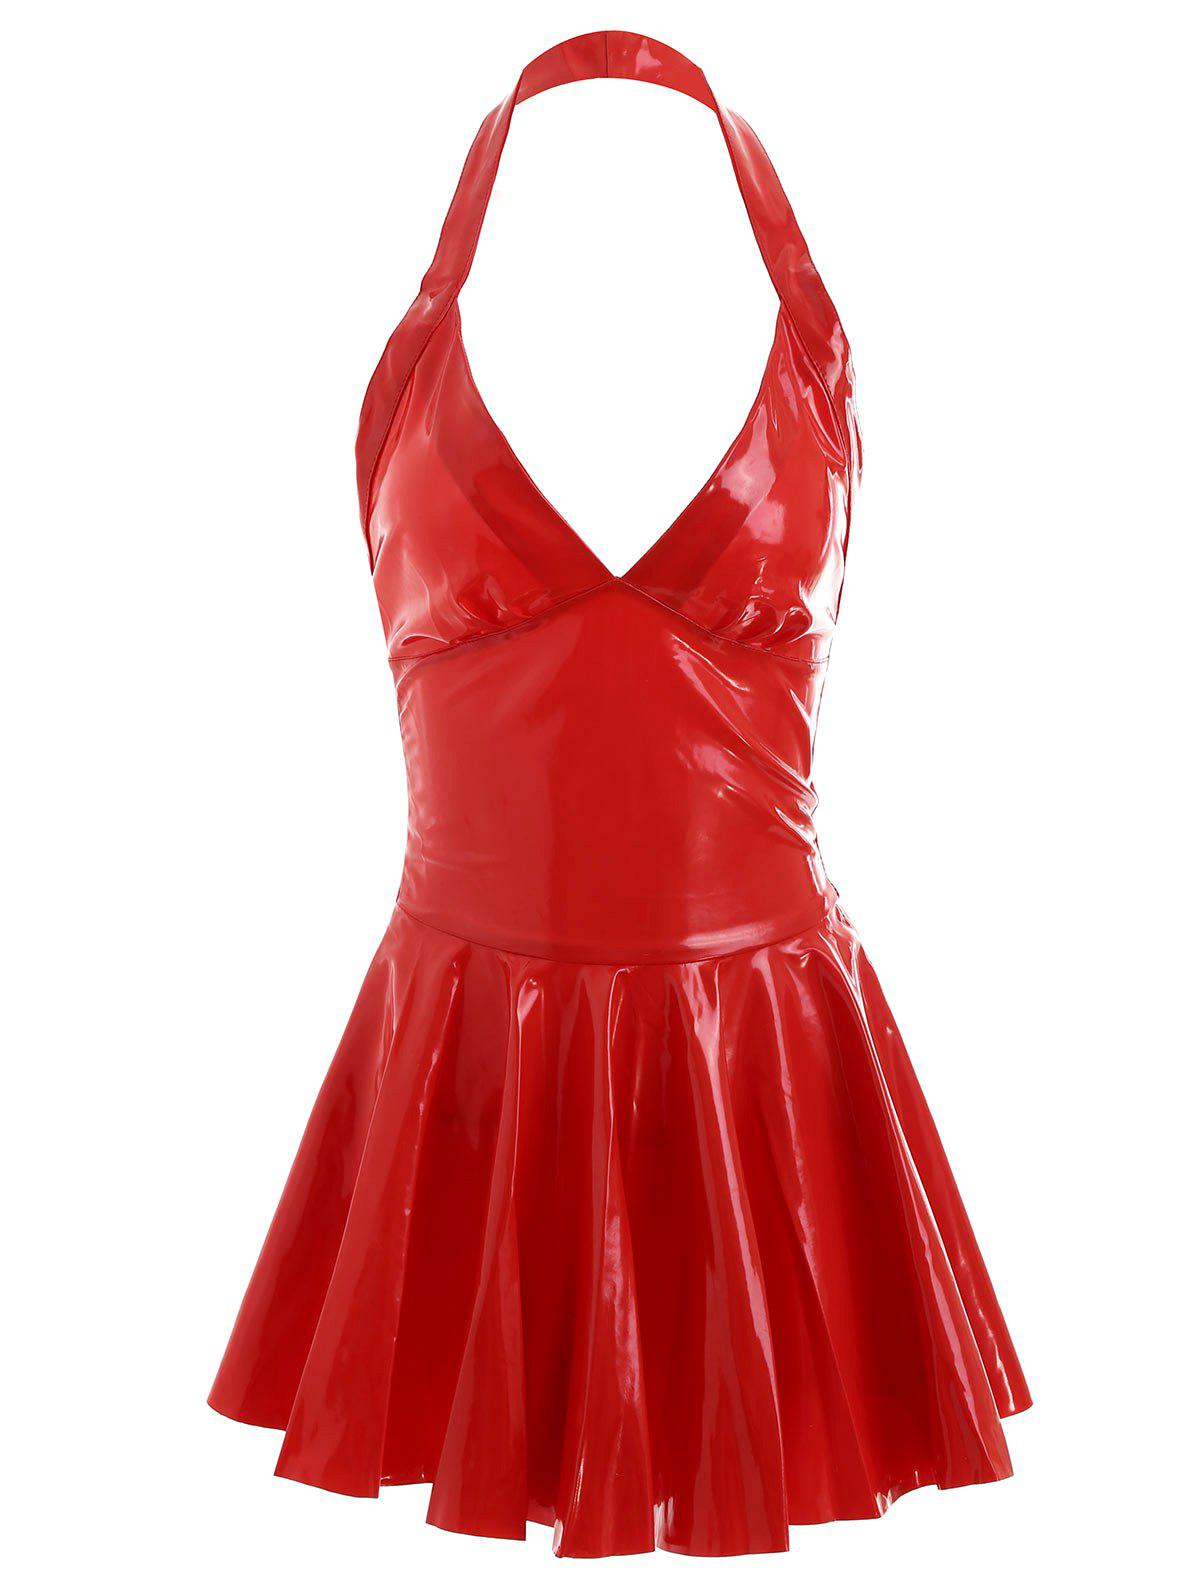 Backless Halter Fake Leather Skater Dress - RED L